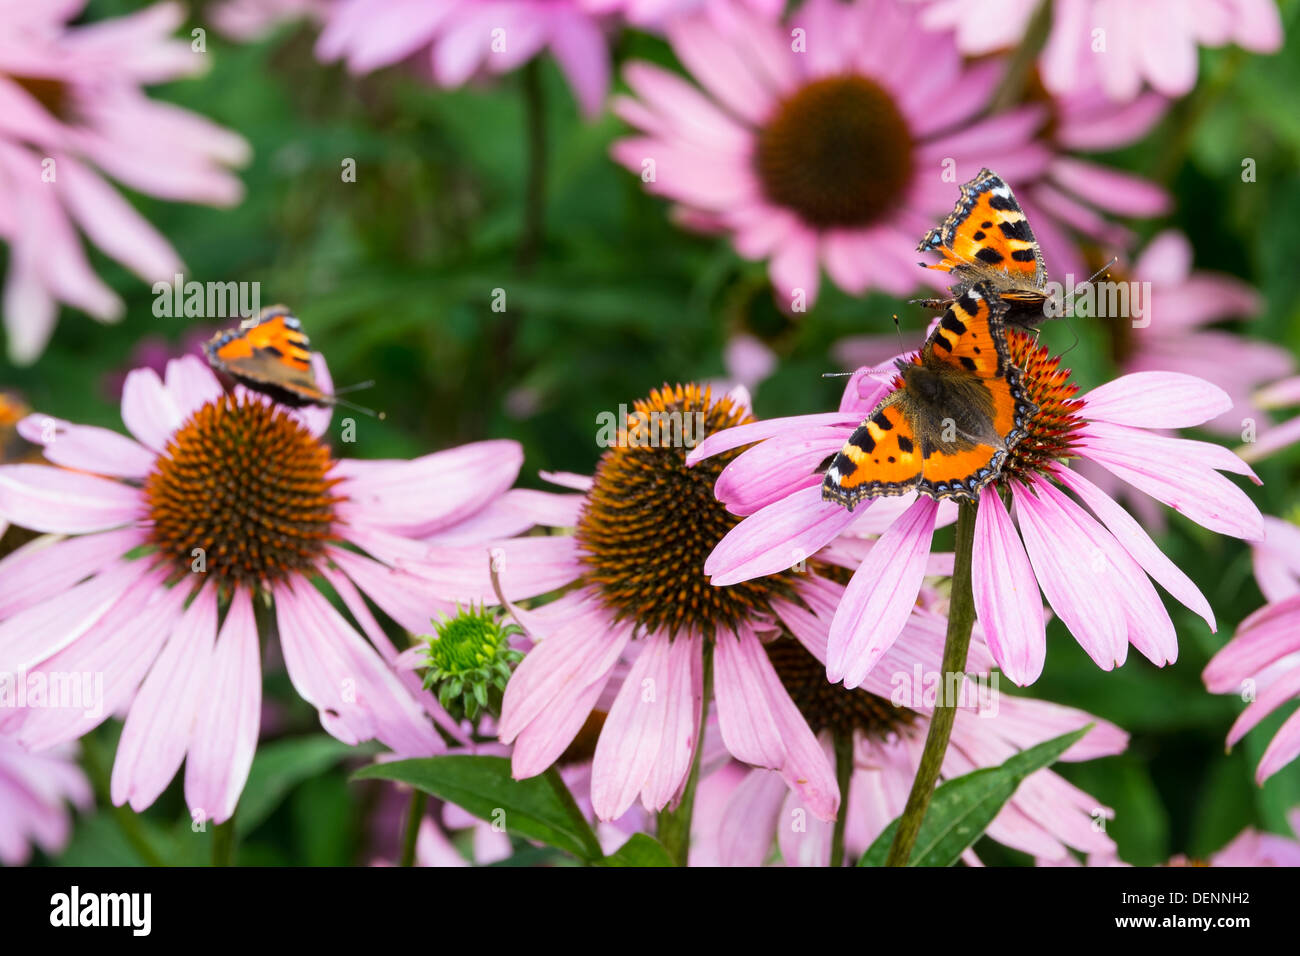 Small Tortoiseshell, Aglais urticae L., feeding on Echinacea purpurea, coneflower or purple coneflower - Stock Image